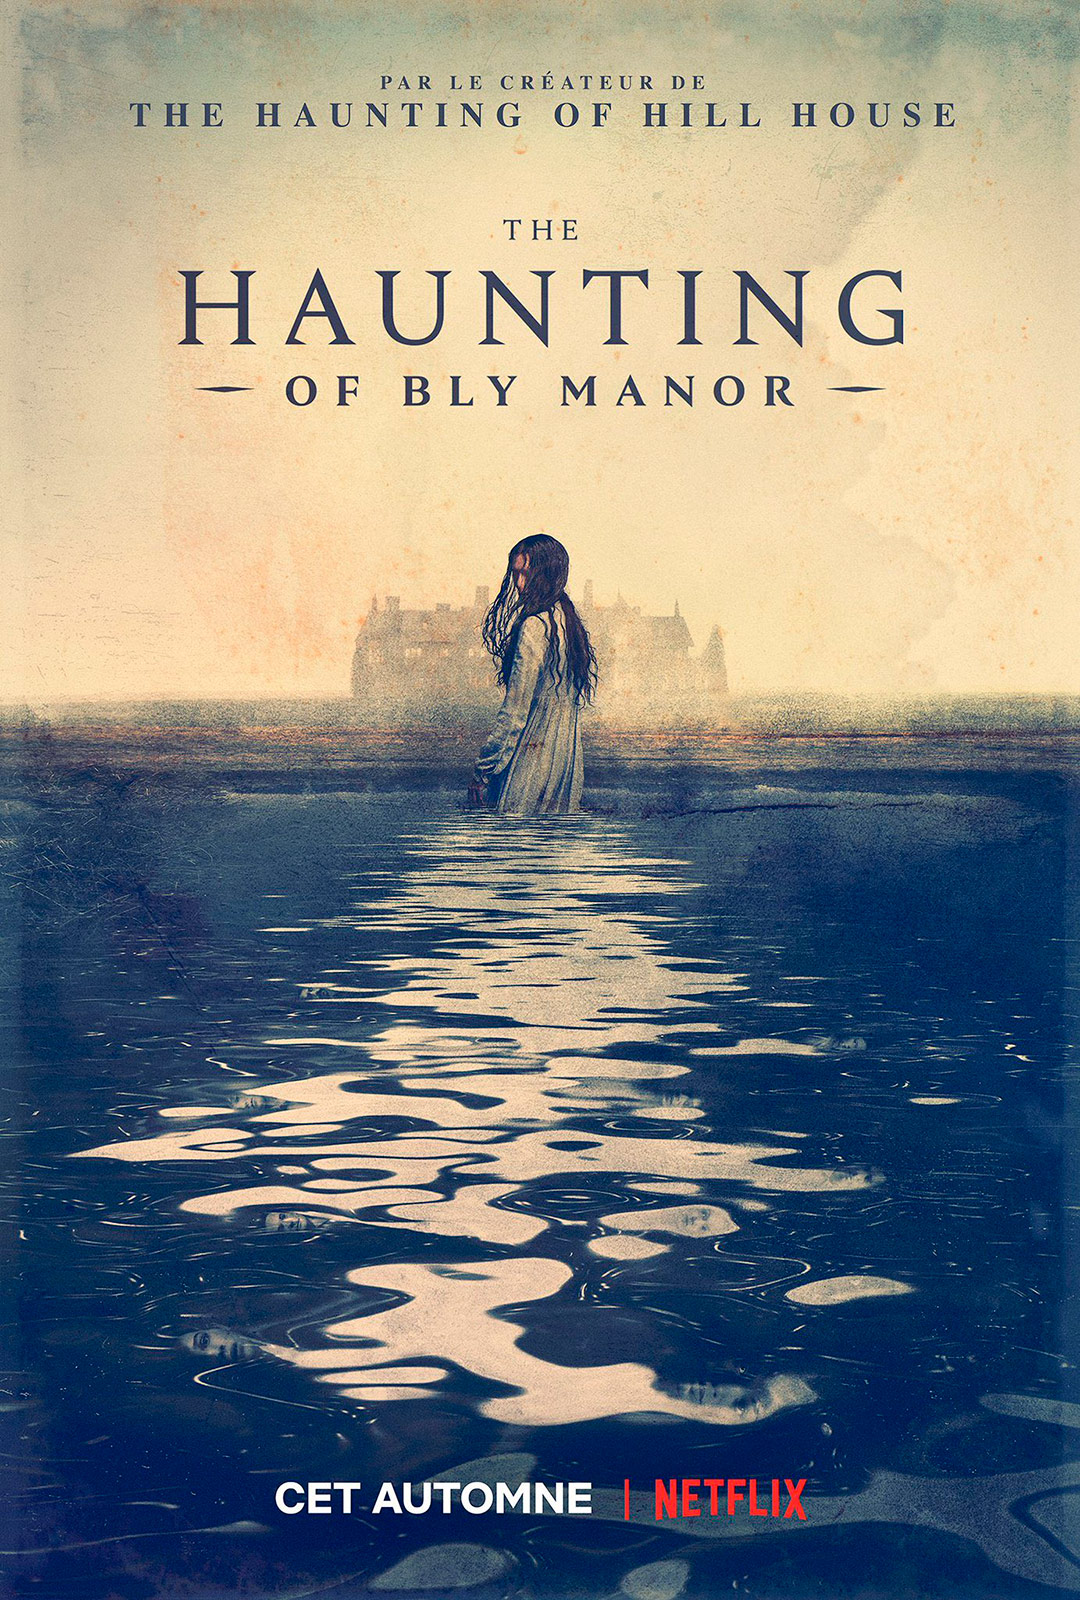 13 - The Haunting of Bly Manor